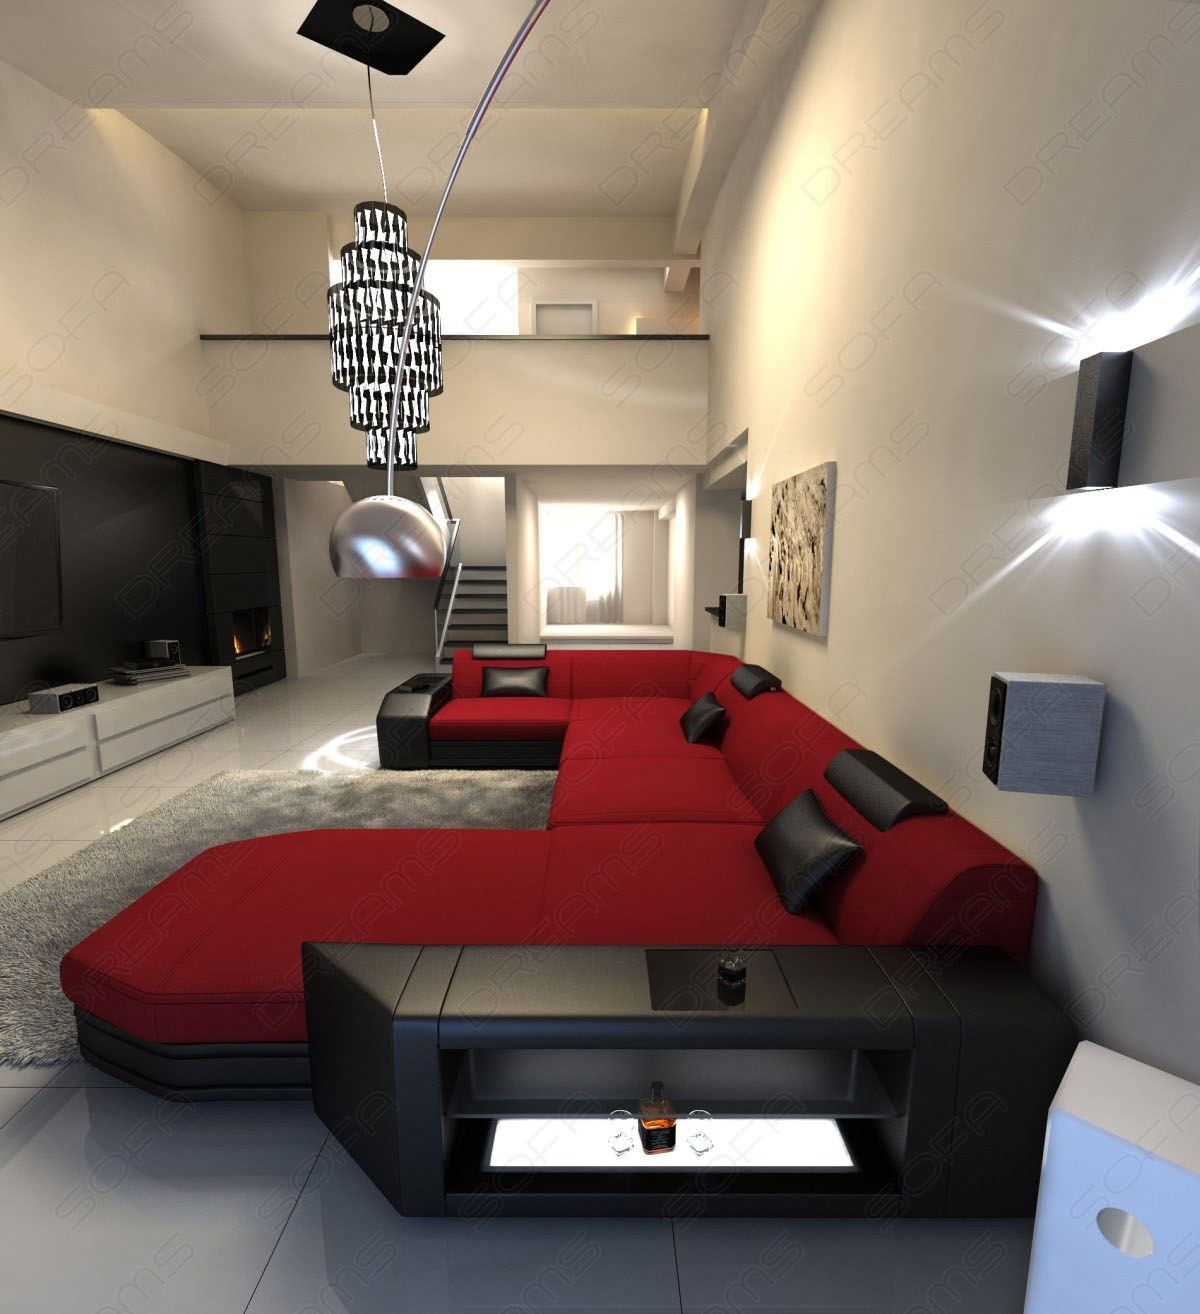 stoffsofa presto design couch ecksofa mit ottomane und led beleuchtung in rot ebay. Black Bedroom Furniture Sets. Home Design Ideas